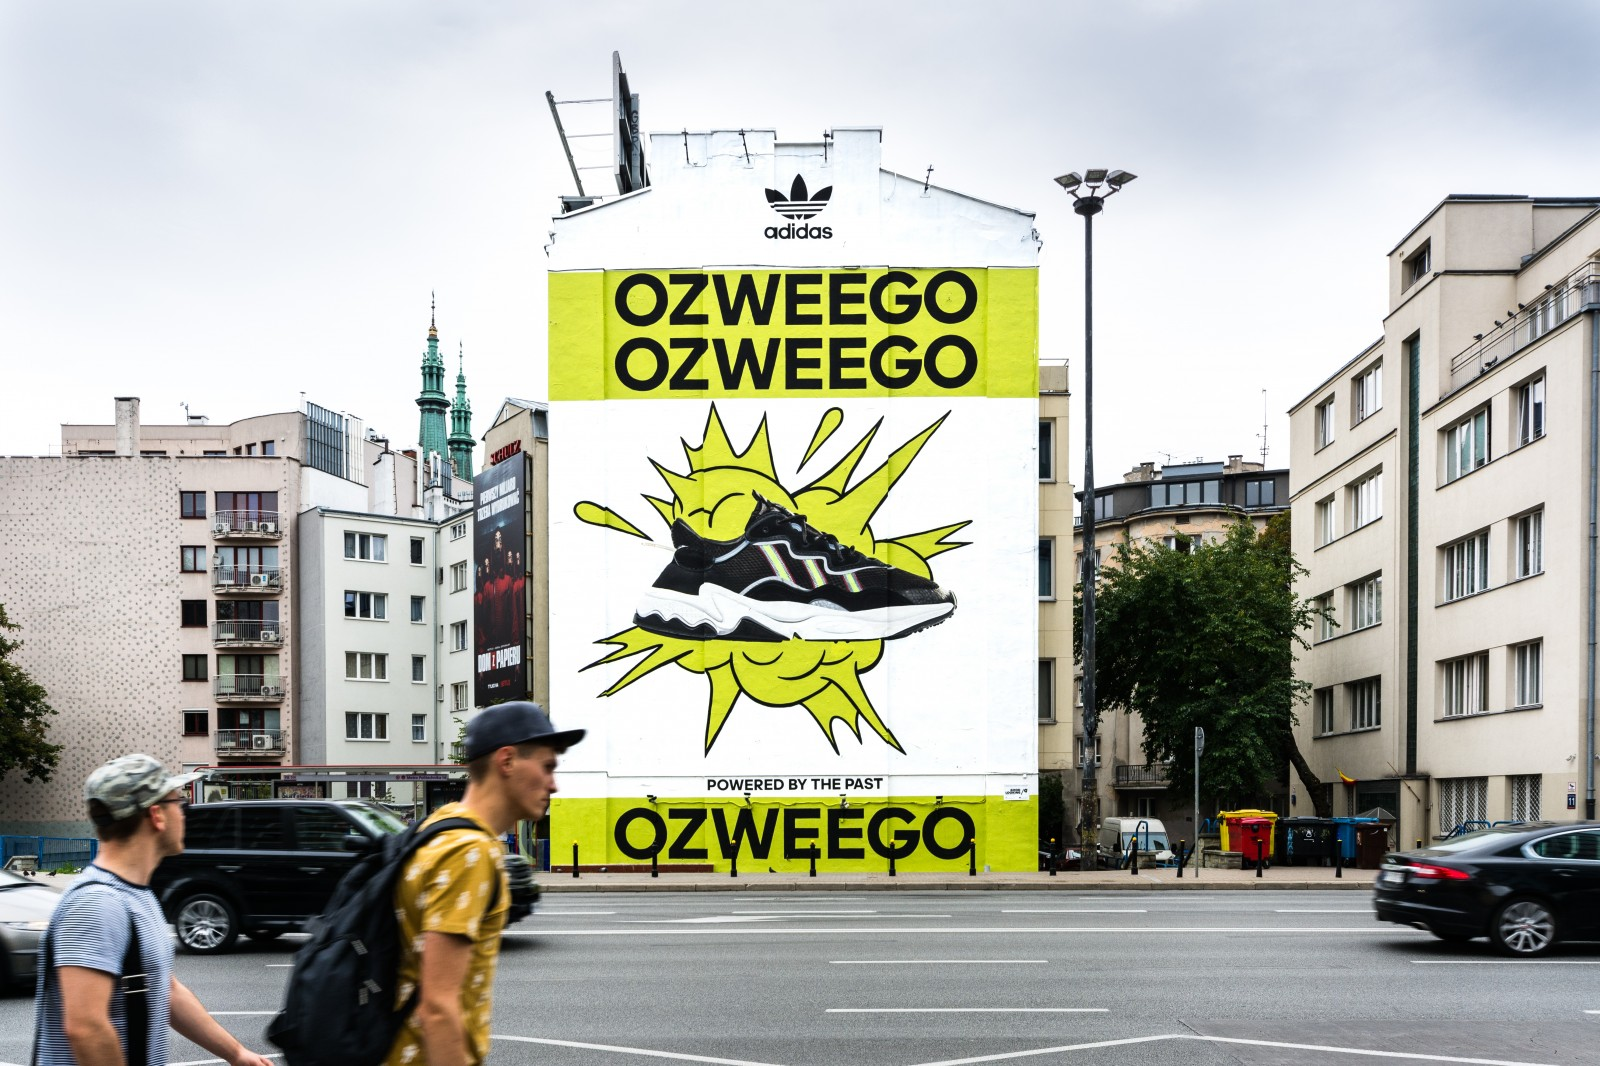 A mural advertising Ozweego for the Adidas Originals brand in Warsaw | Adidas Ozweego | Portfolio